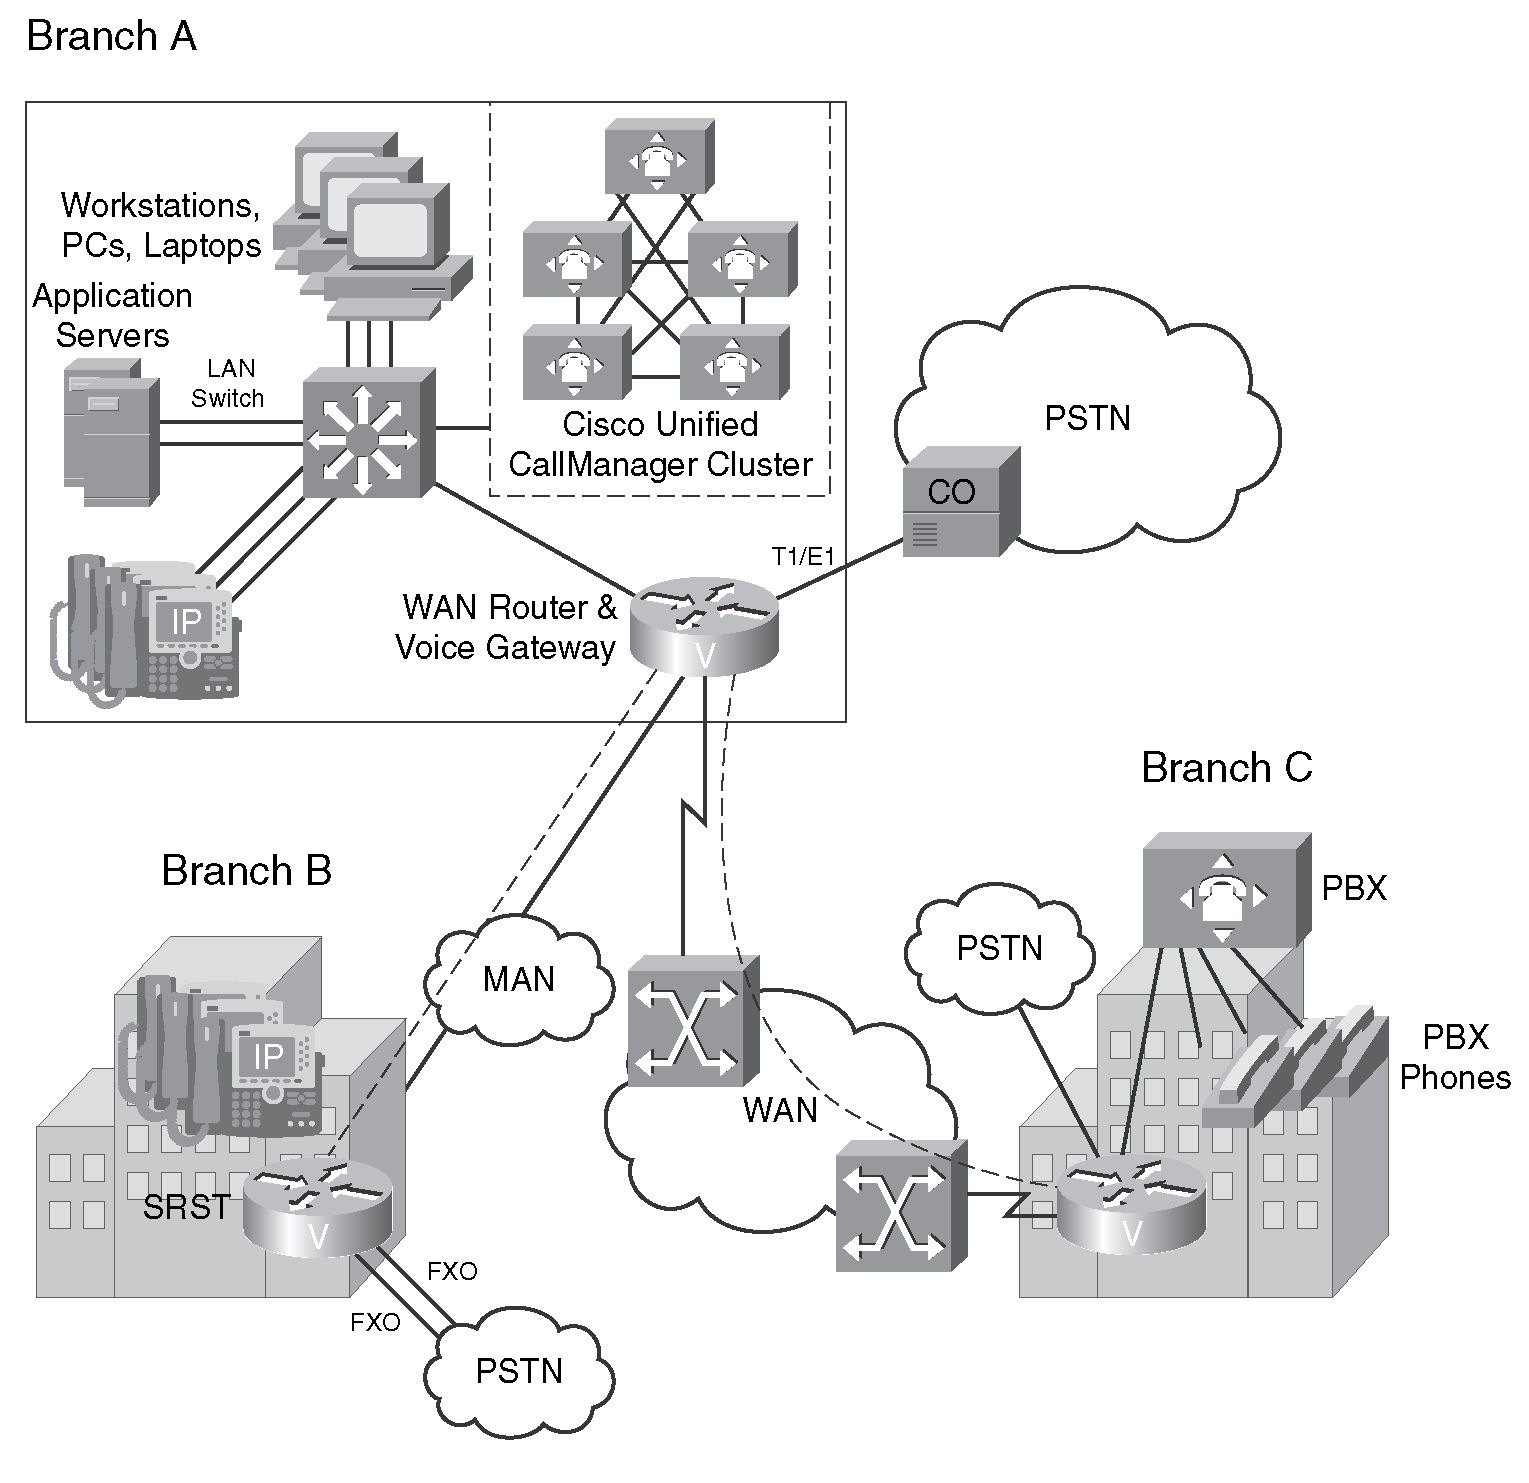 Implementing VoIP Support in an Enterprise Network (Cisco VoIP